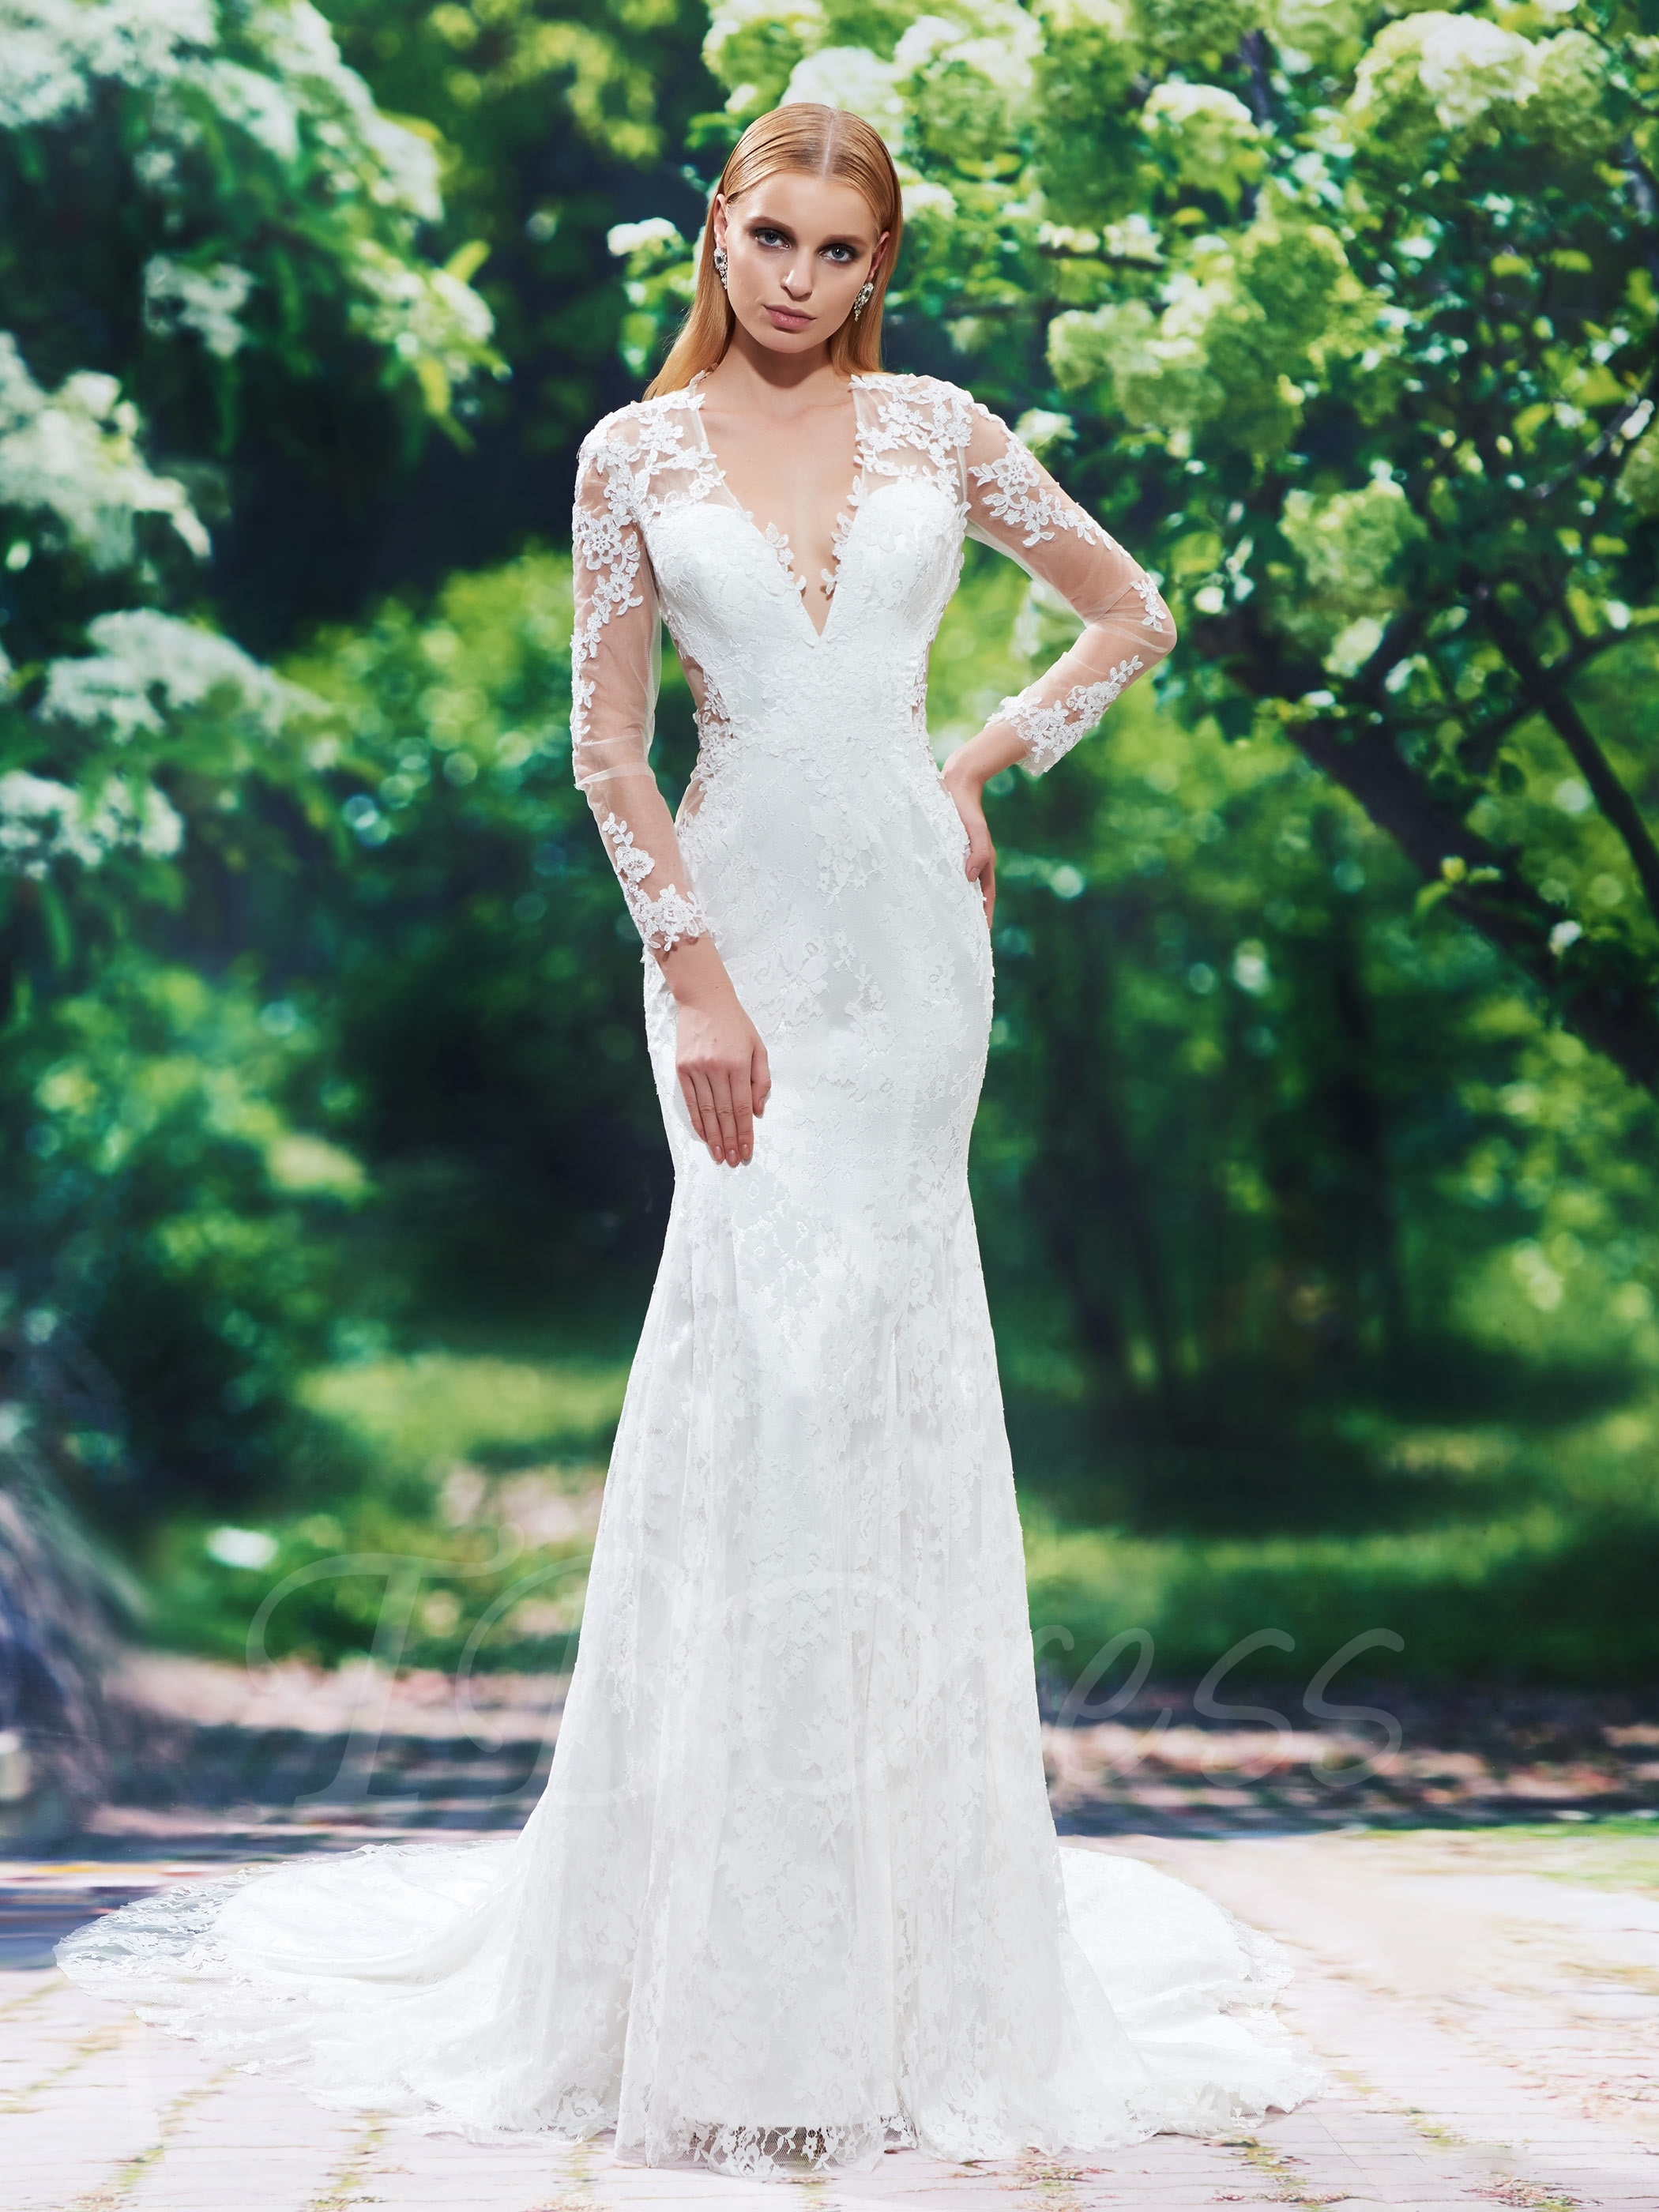 V-neck wedding dress with illusion parts